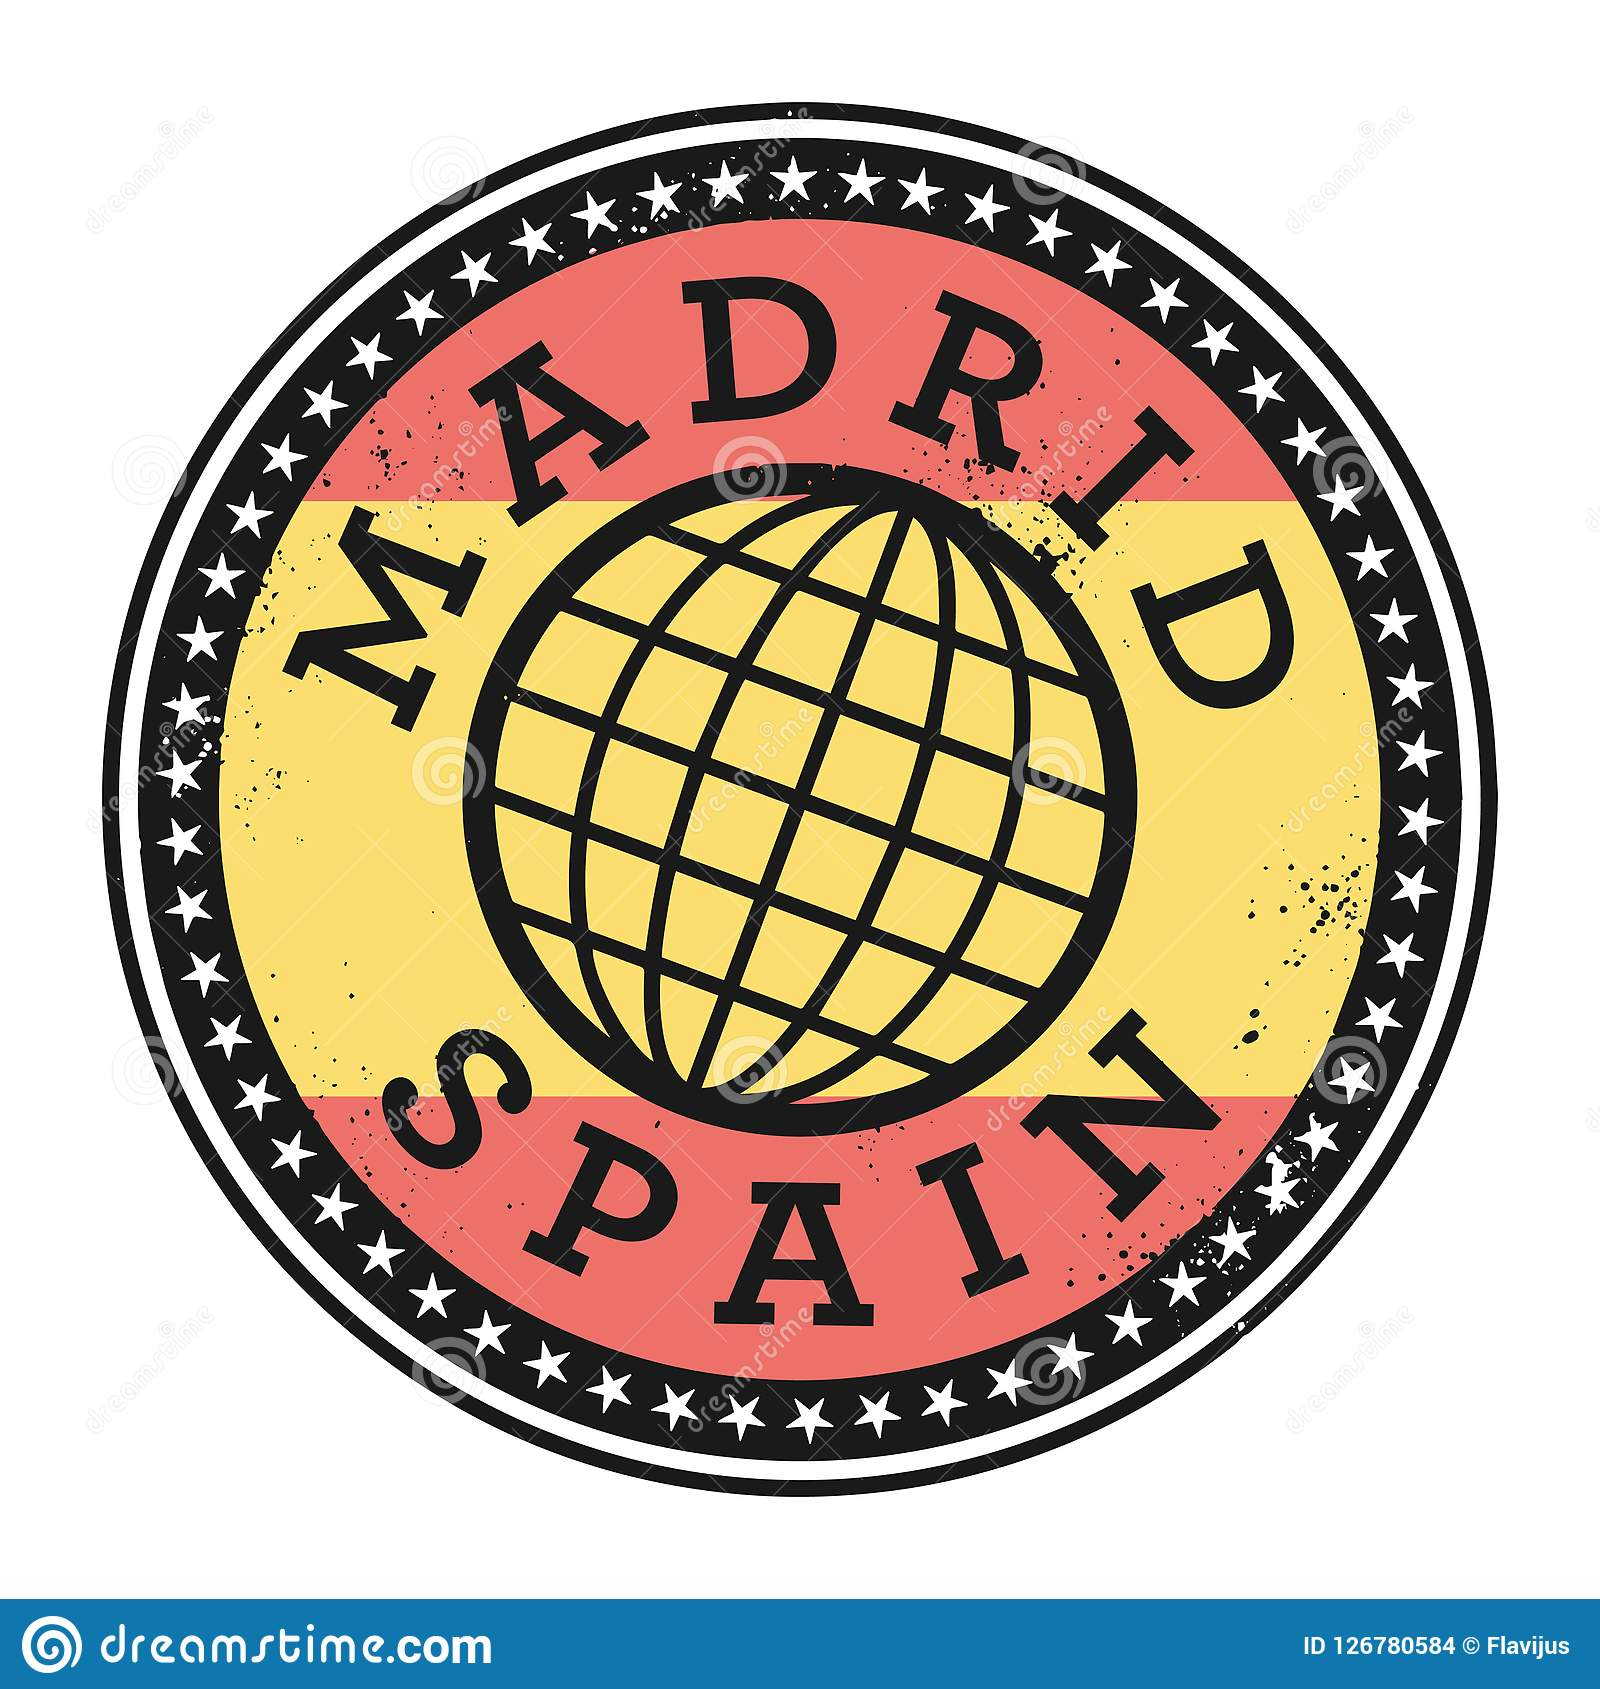 Grunge rubber stamp with the text Madrid, Spain